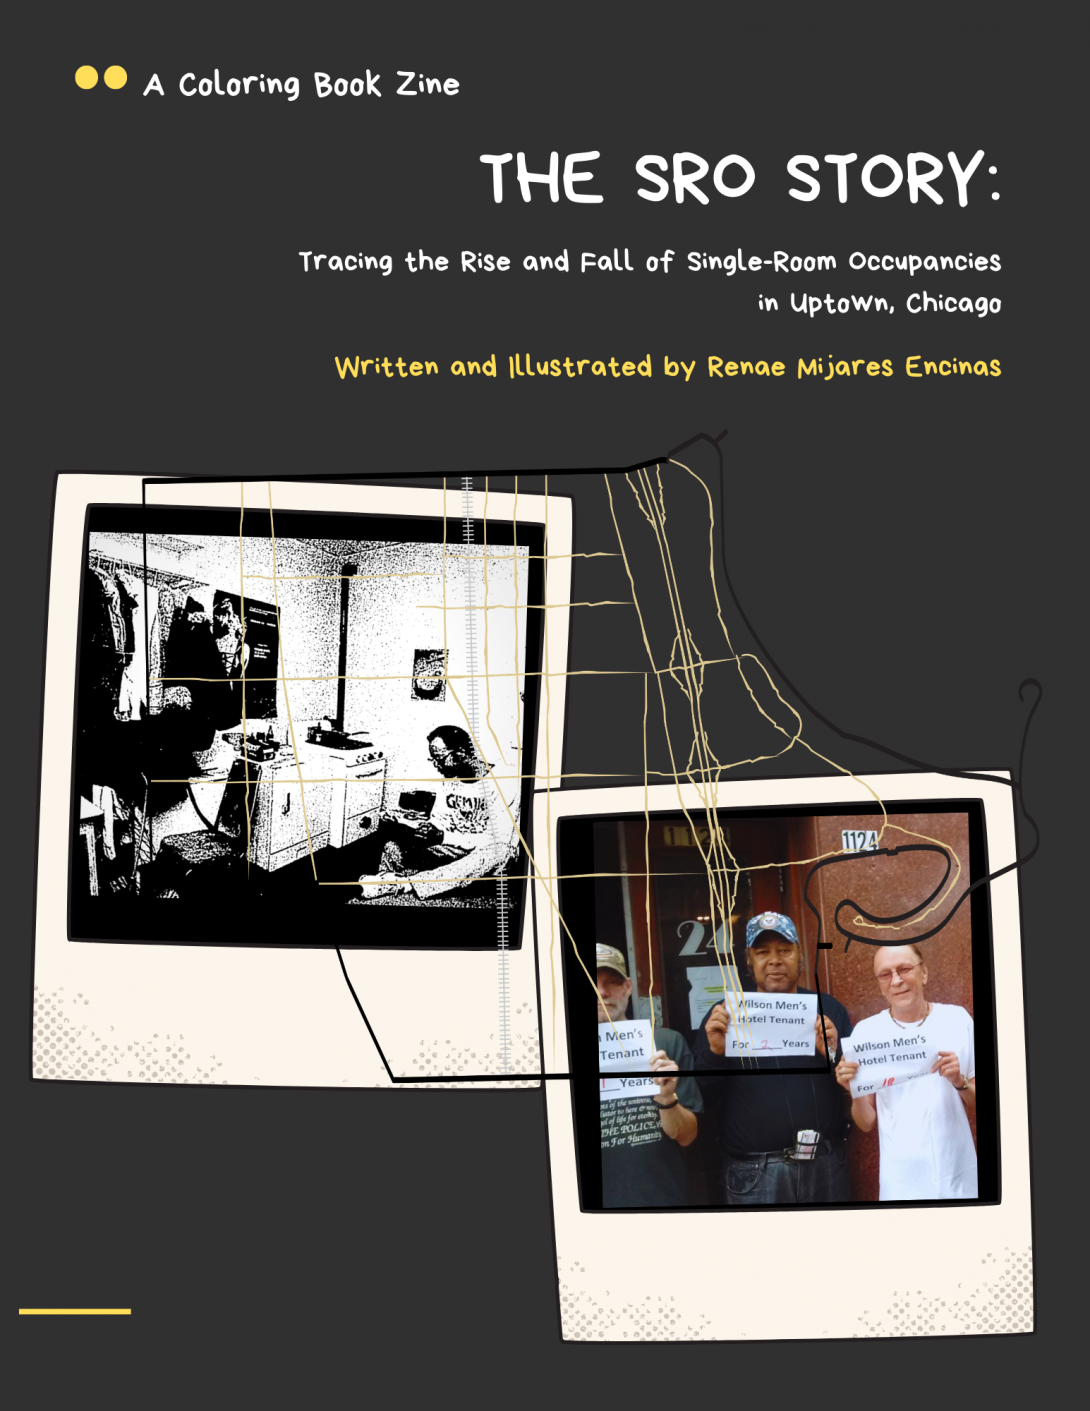 The SRO Story: Tracing the Rise and Fall of Single-Room Occupancies in Uptown, Chicago